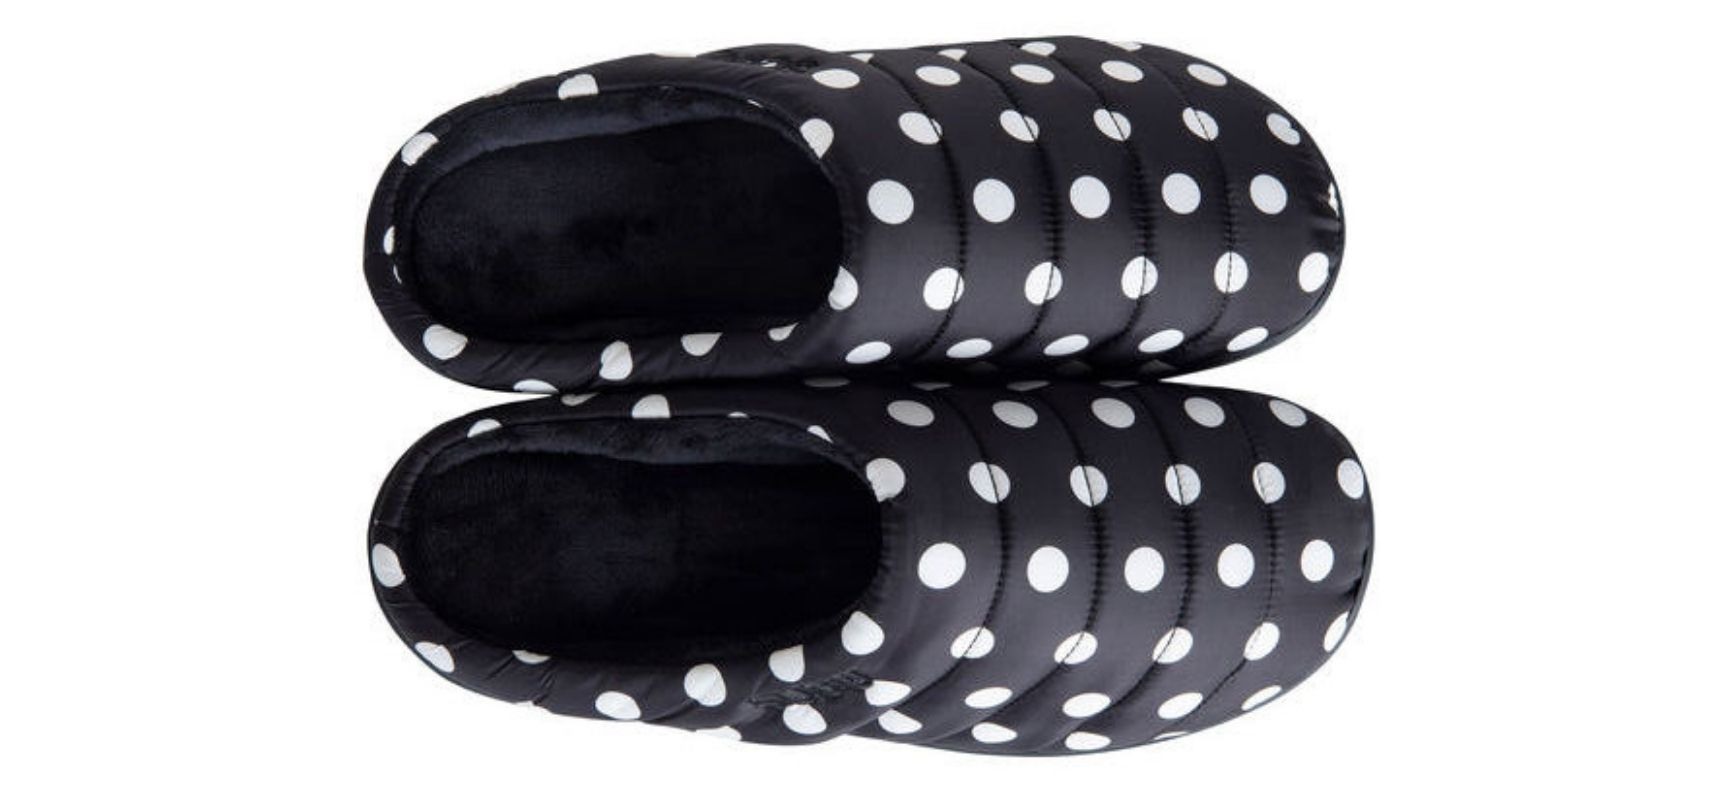 Black Subu slippers with white polka dots